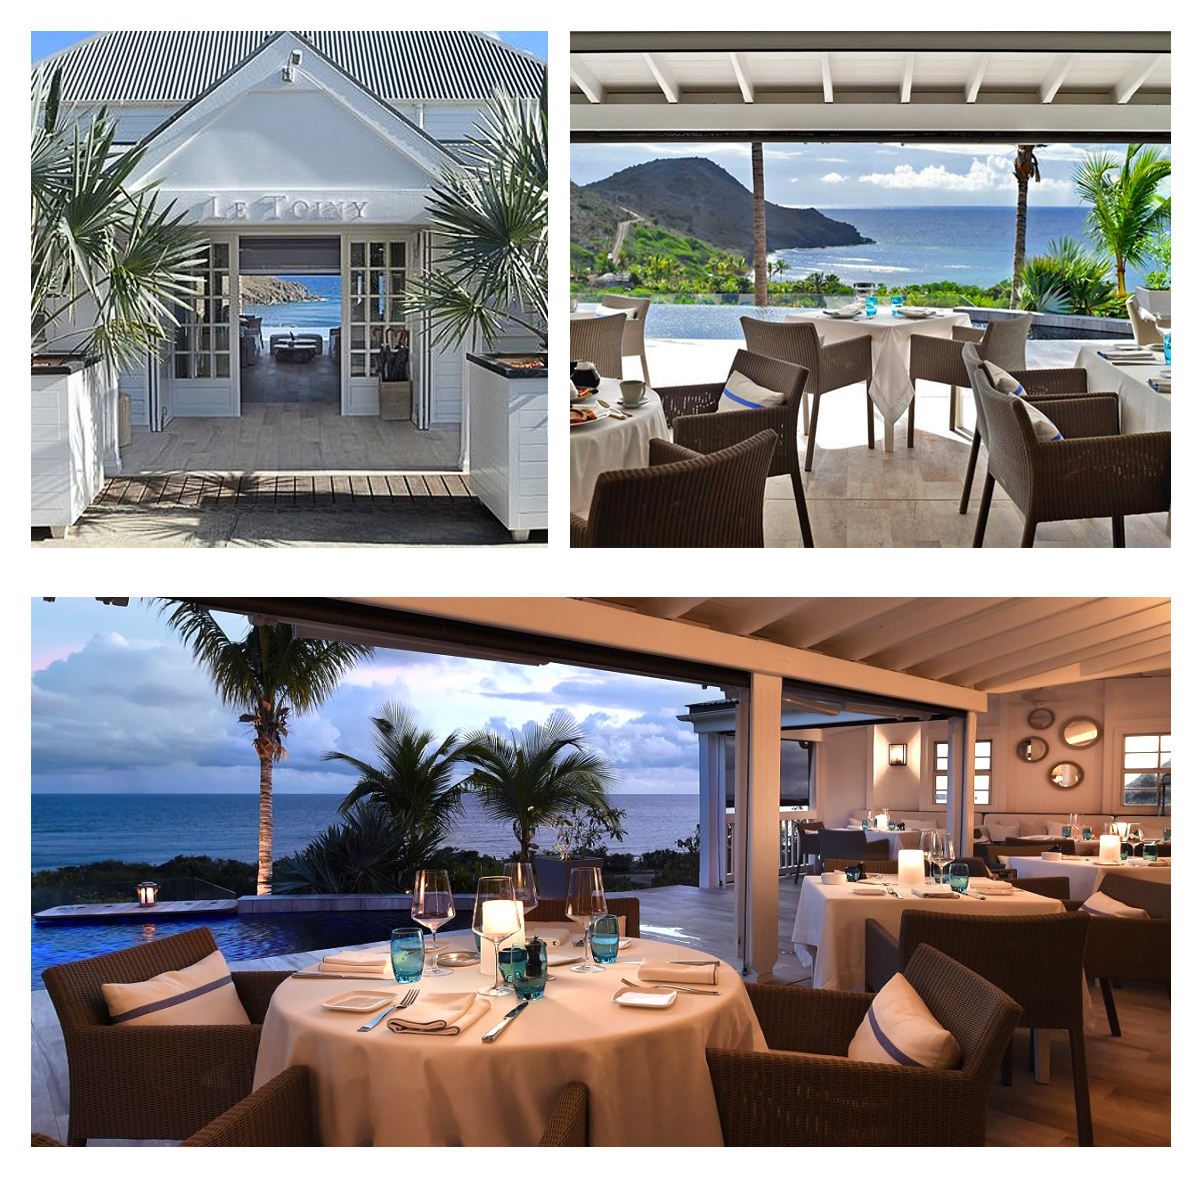 Relais & Chateaux Hotel Le Toiny, St Barth by Design: Bee Osborn